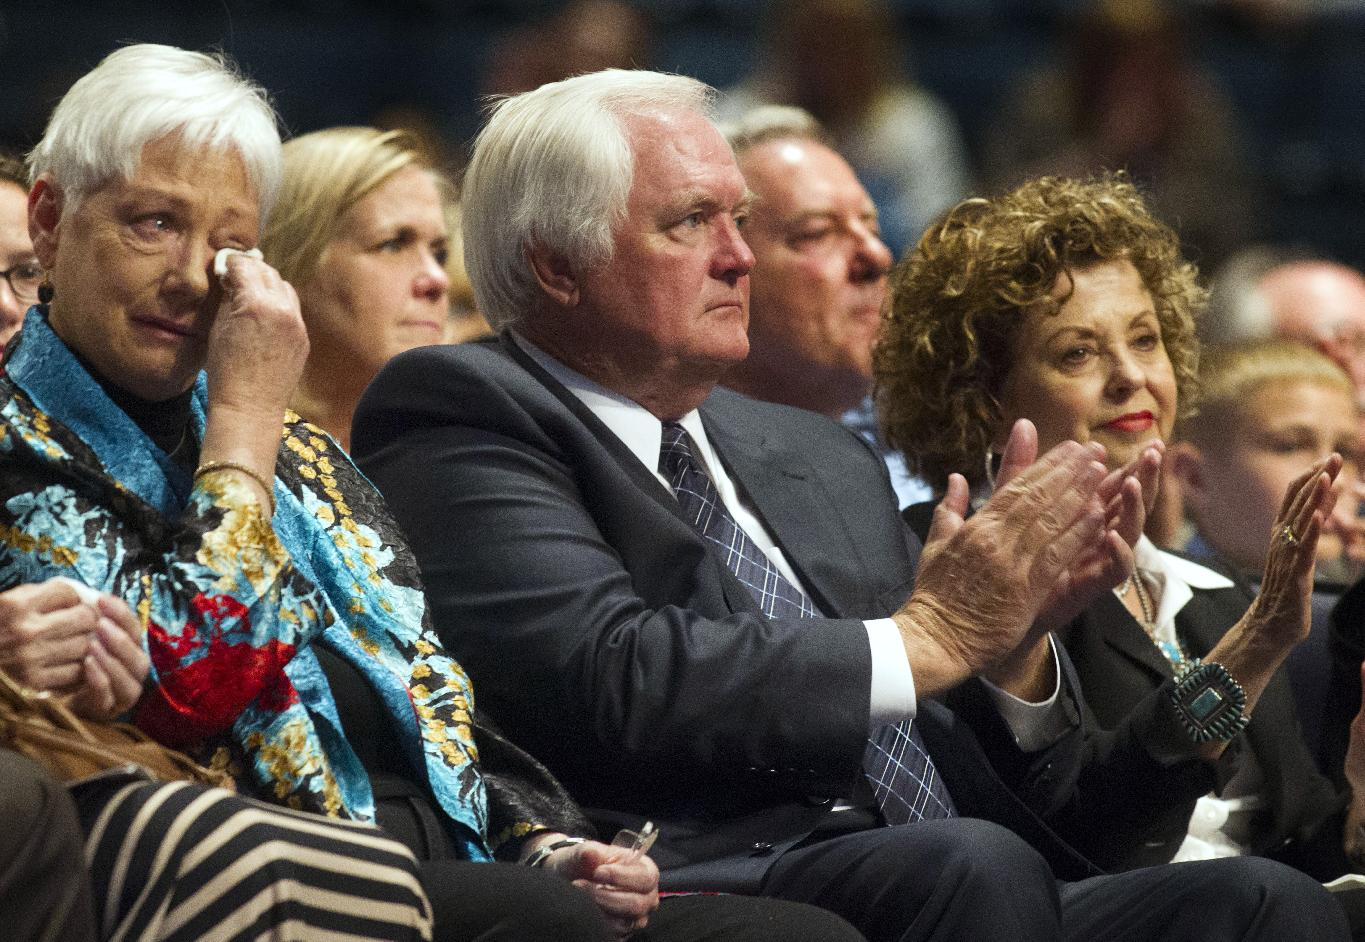 Bum Phillips' wife, Debbie, left; son Wade; and Wade Phillips' wife, Laurie, attend a memorial service for Bum Phillips on Tuesday, Oct. 29, 2013, in Houston. Phillips, the former Houston Oilers and New Orleans Saints coach, died Oct. 18 at age 90